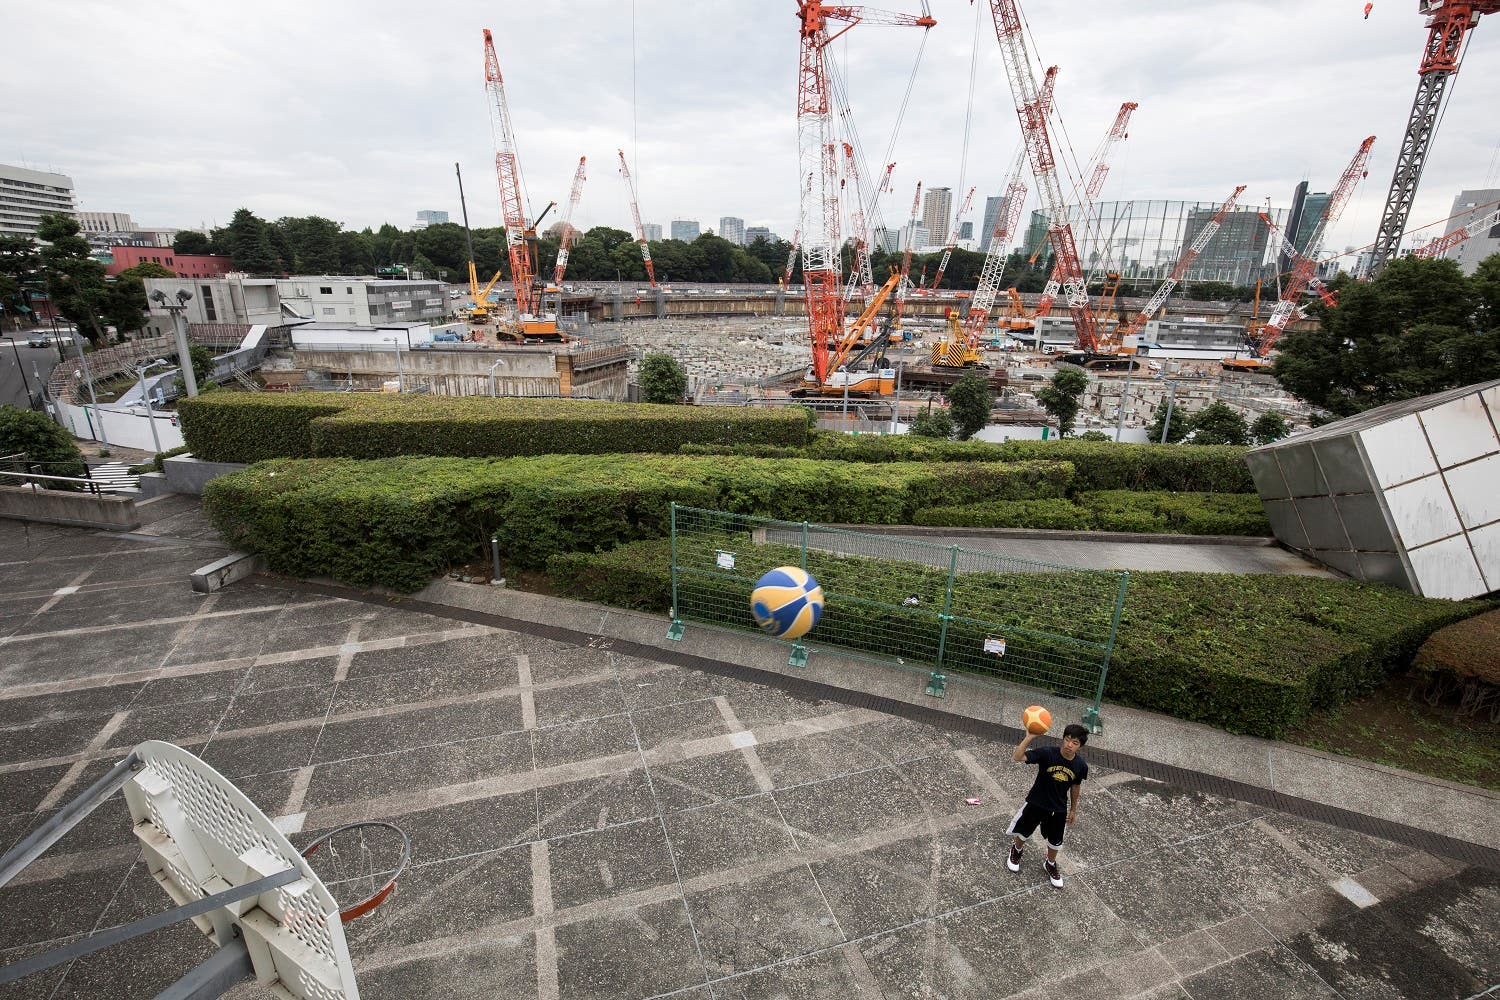 A Japanese man plays basketball at the Tokyo metropolitan gymnasium as the construction site for the National Stadium, venue for the upcoming Tokyo 2020 Olympics, is seen in the background in Tokyo on June 30, 2017. The International Olympic Committee (IOC) insisted on June 30 the showpiece venue for the Tokyo 2020 Summer Games would be completed on schedule after a disastrous rollout of the initial plans. (AFP)